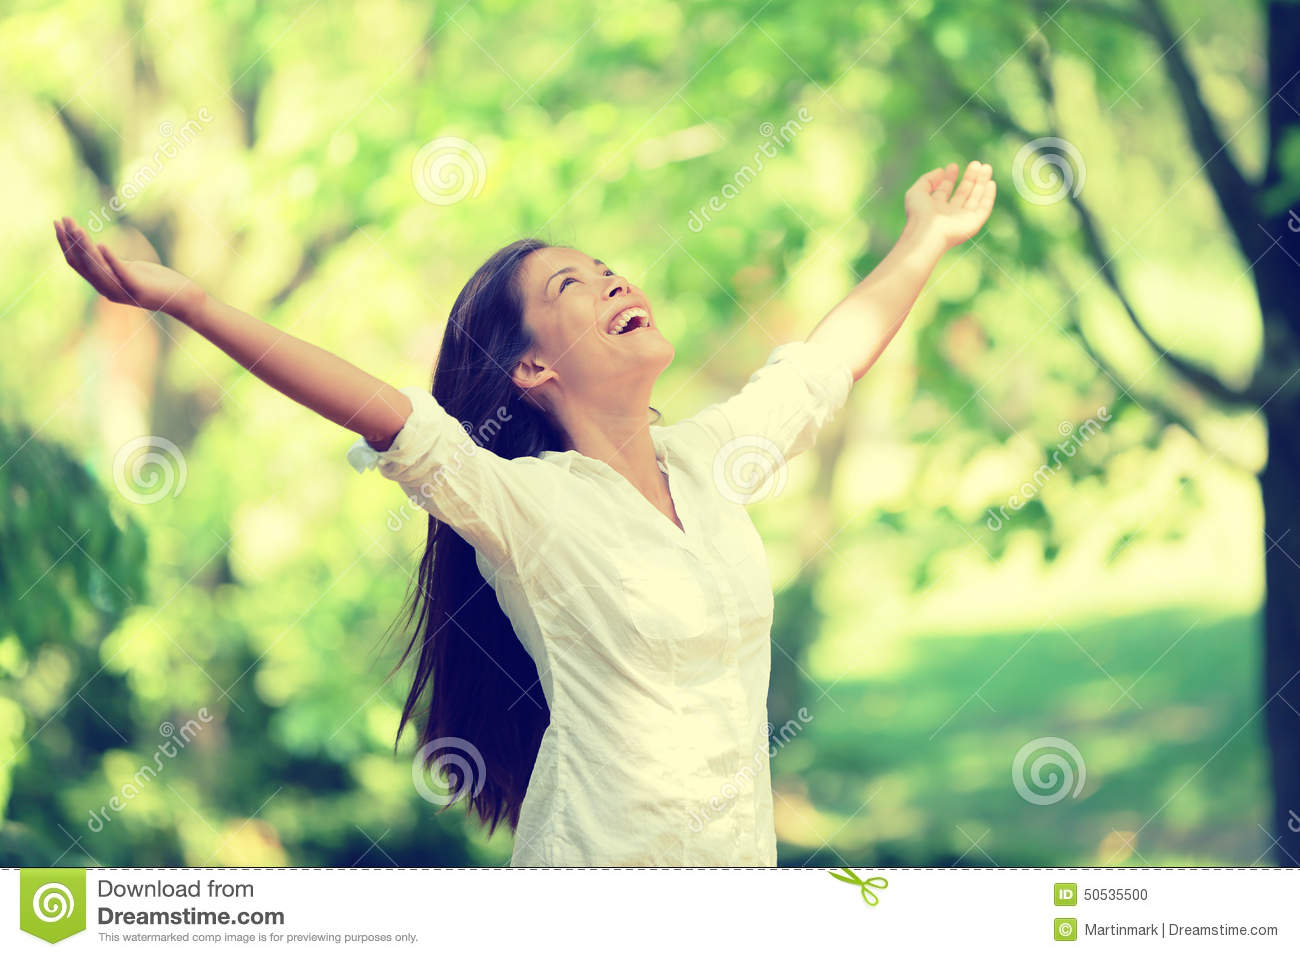 freedom-happy-woman-feeling-free-nature-air-alive-breathing-clean-fresh-carefree-young-adult-dancing-forest-park-50535500.jpg